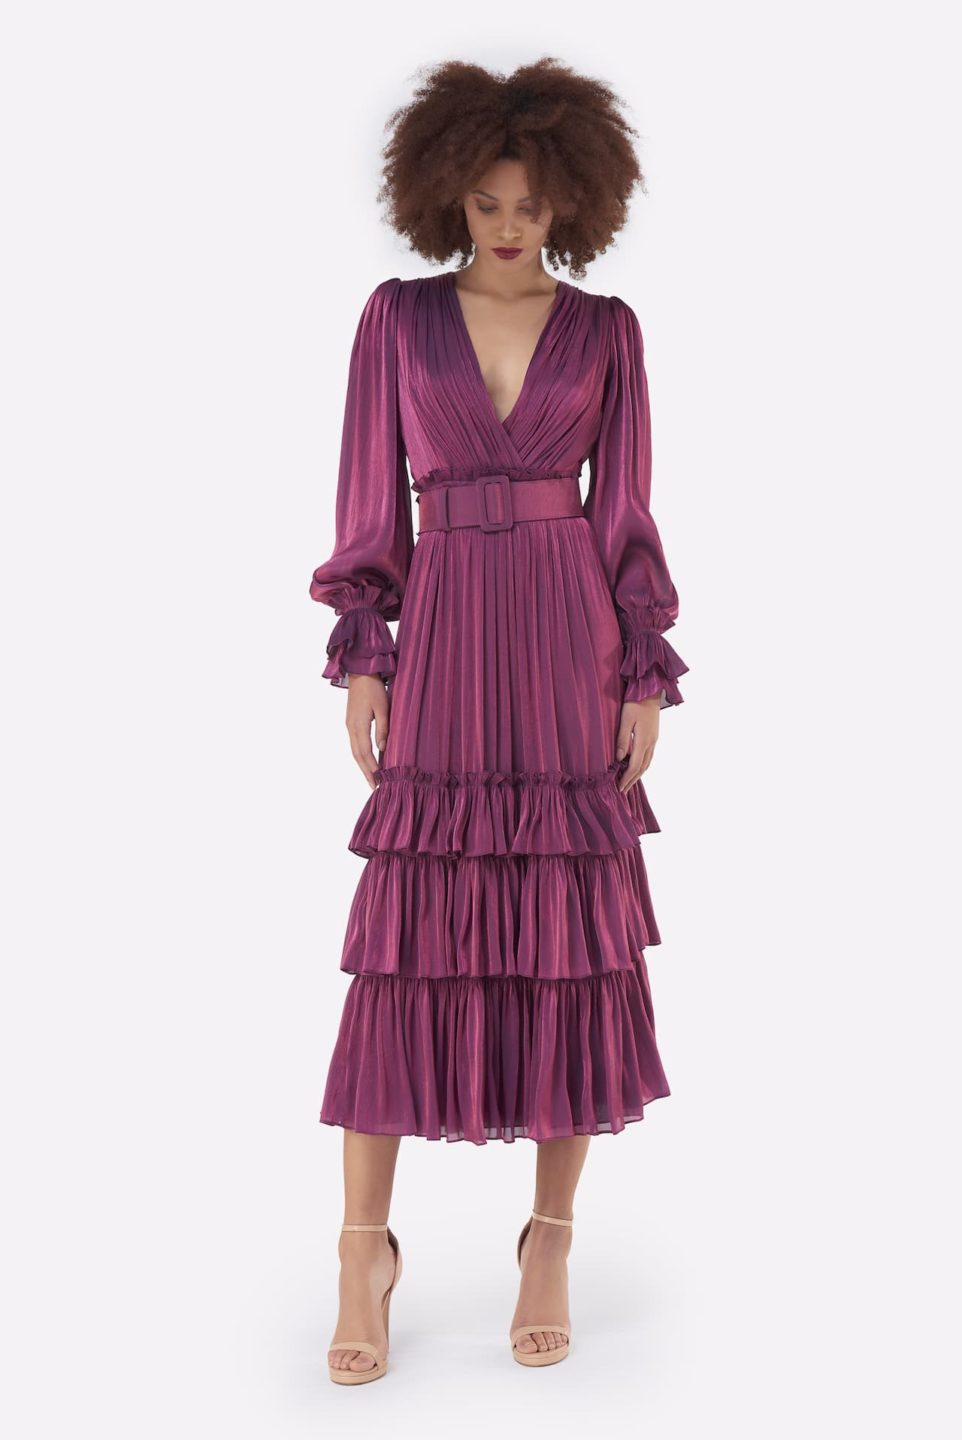 Oliva PS2152 Purple Iridescent Lurex Georgette Flounce Dress with Gathered Texture & Ruffle Detail